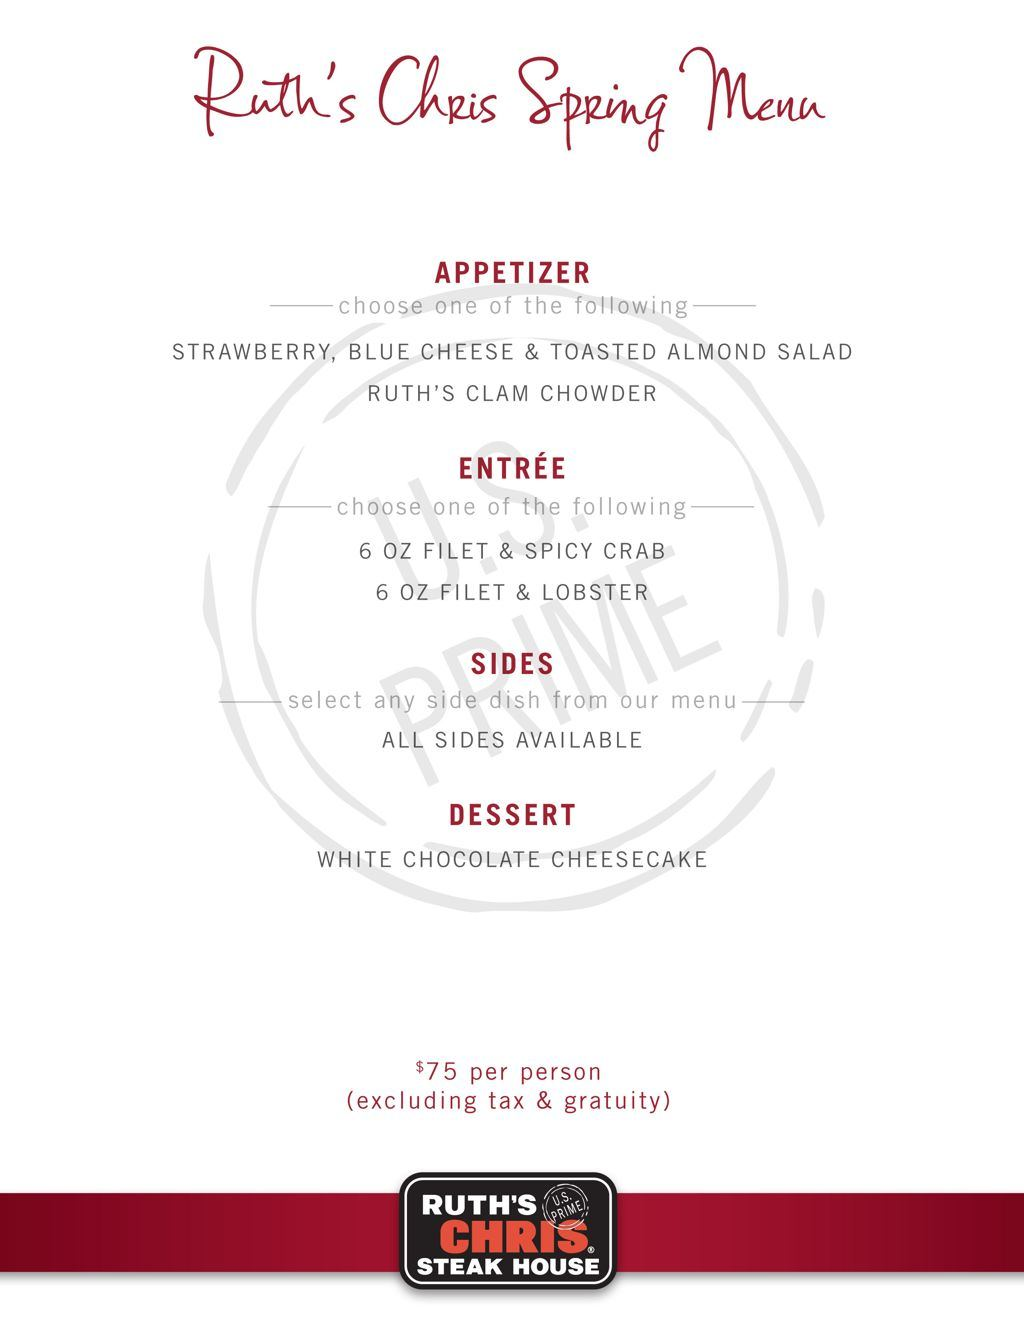 Ruth's Chris Spring Menu